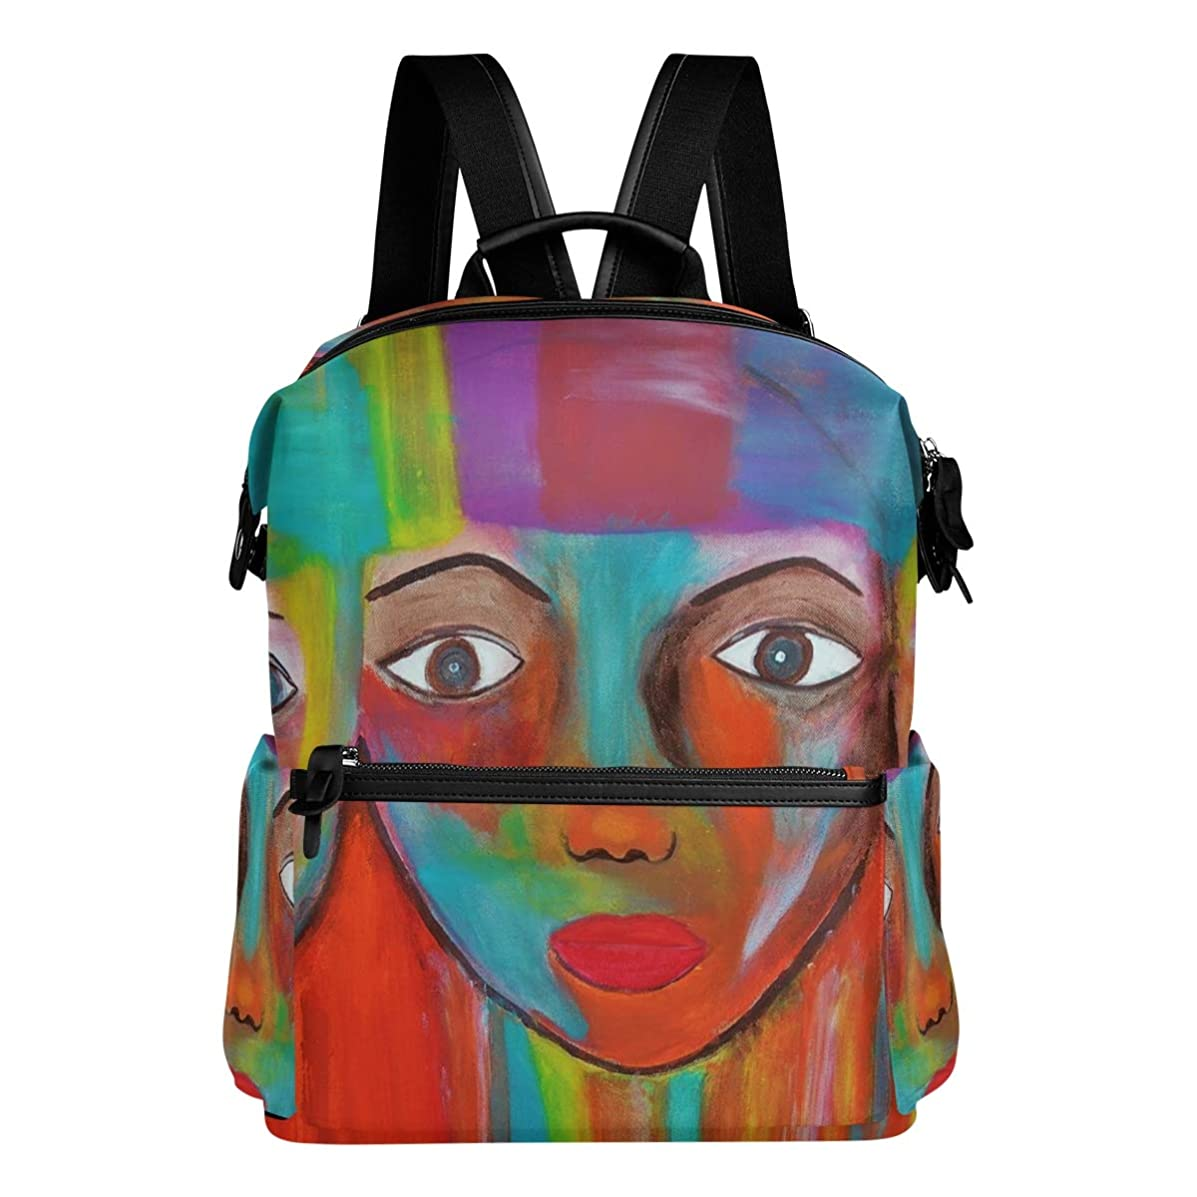 Laptop Backpack New Full Print School Boys and Girls College Travel Backpack Satchel Tote